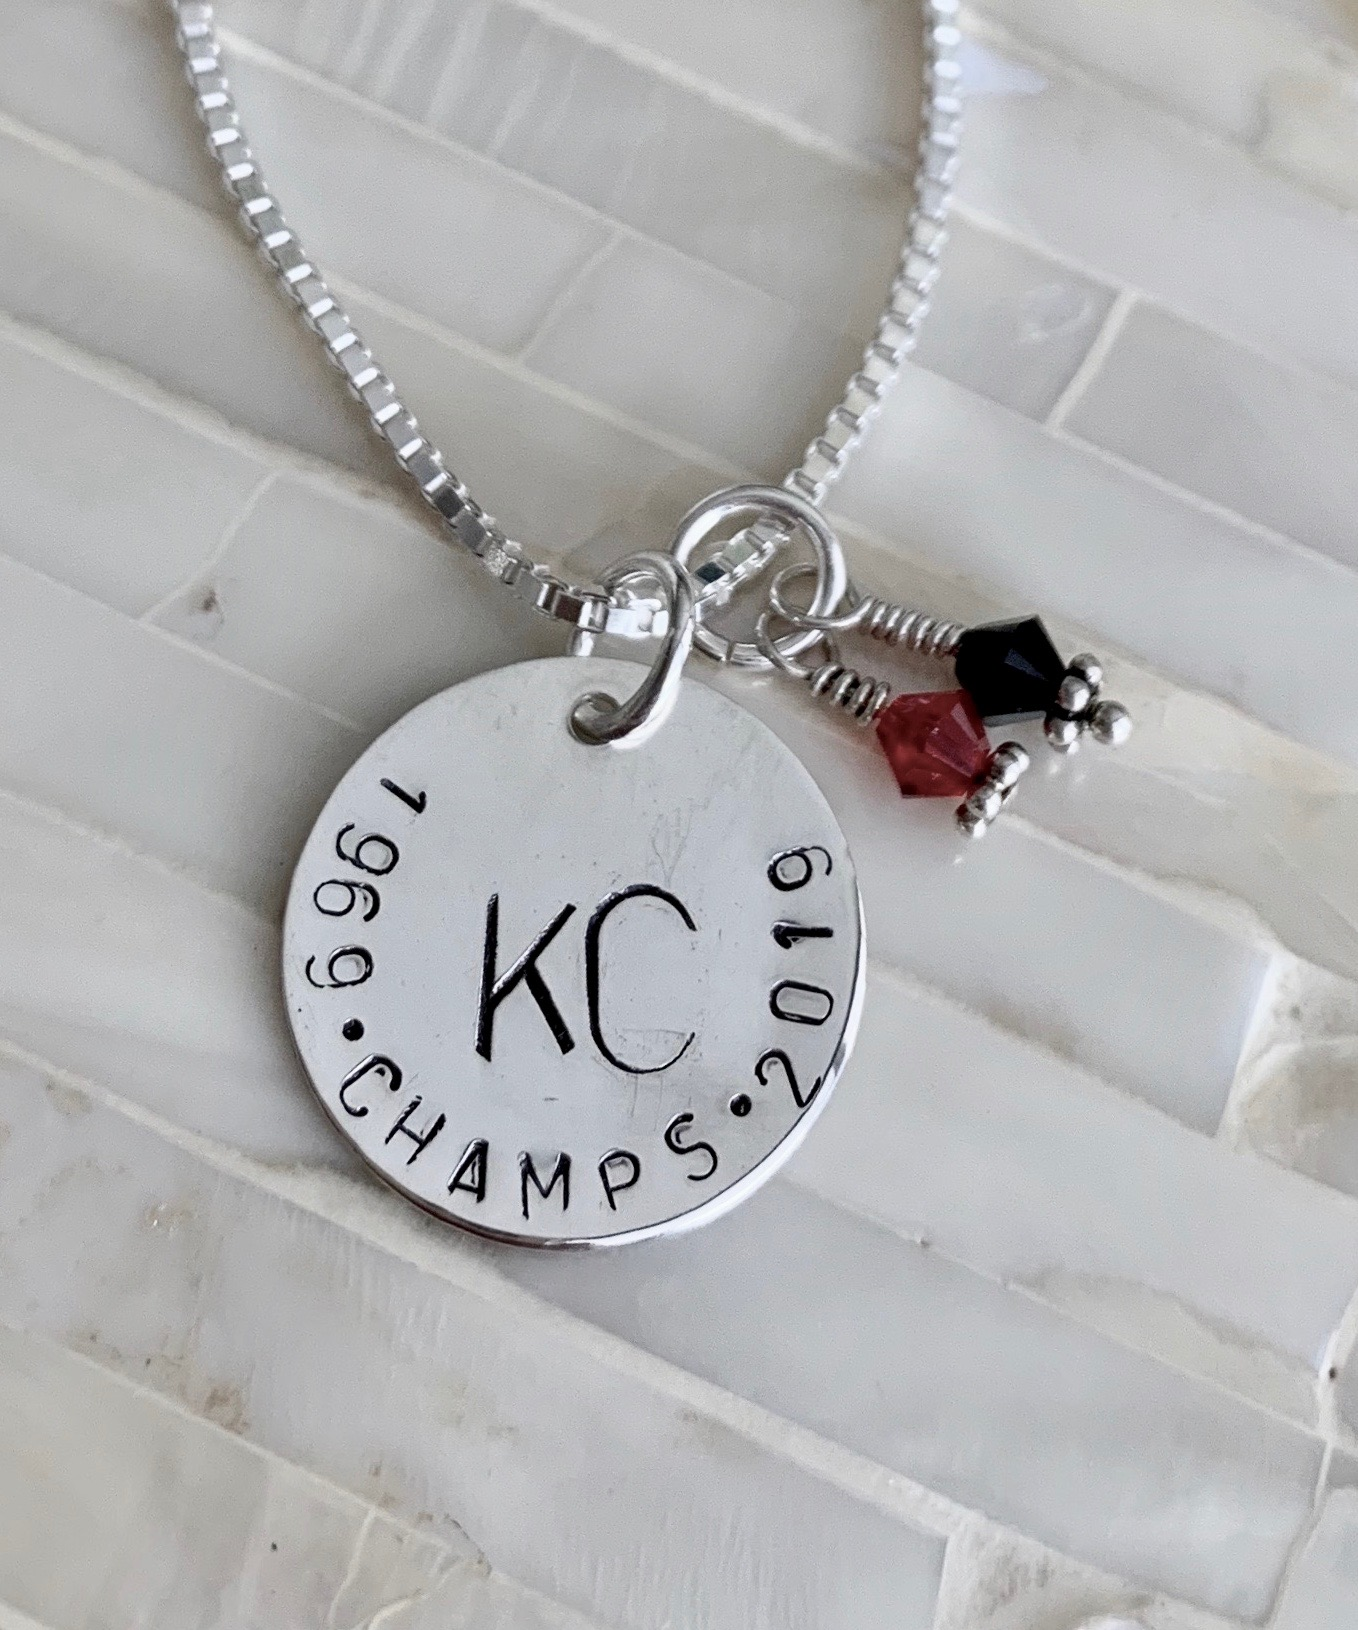 Personalized Chiefs Champs Necklace